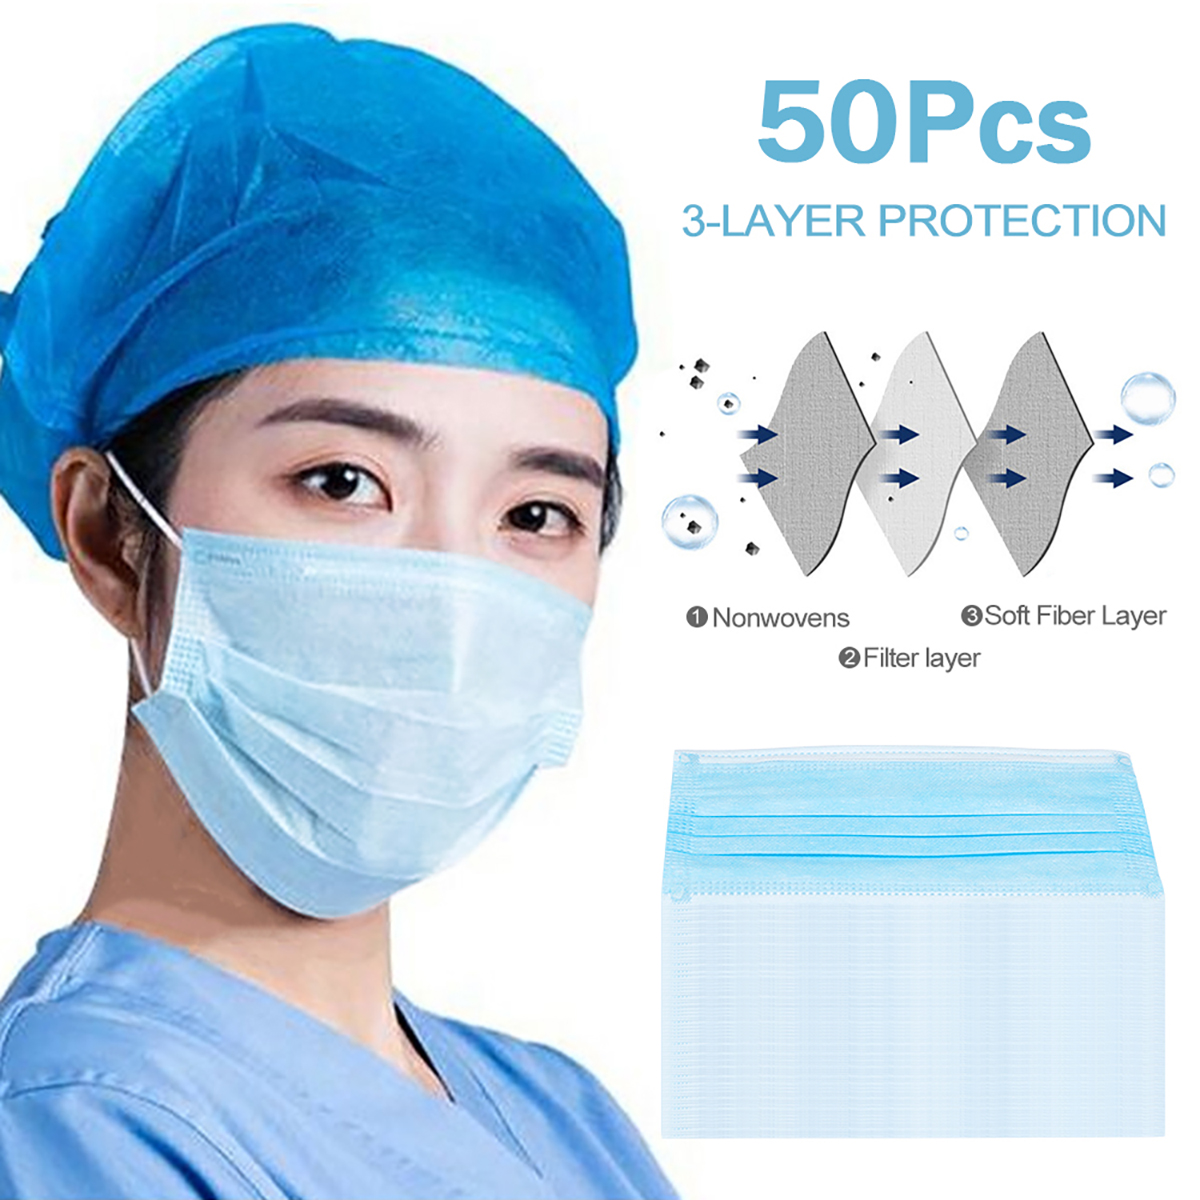 50/20/10pcs Face Masks Anti-Dust Protective Masks Disposable Anti-Pollution 3 Layer Mask Elastic Earloops Non Woven Filter Mask